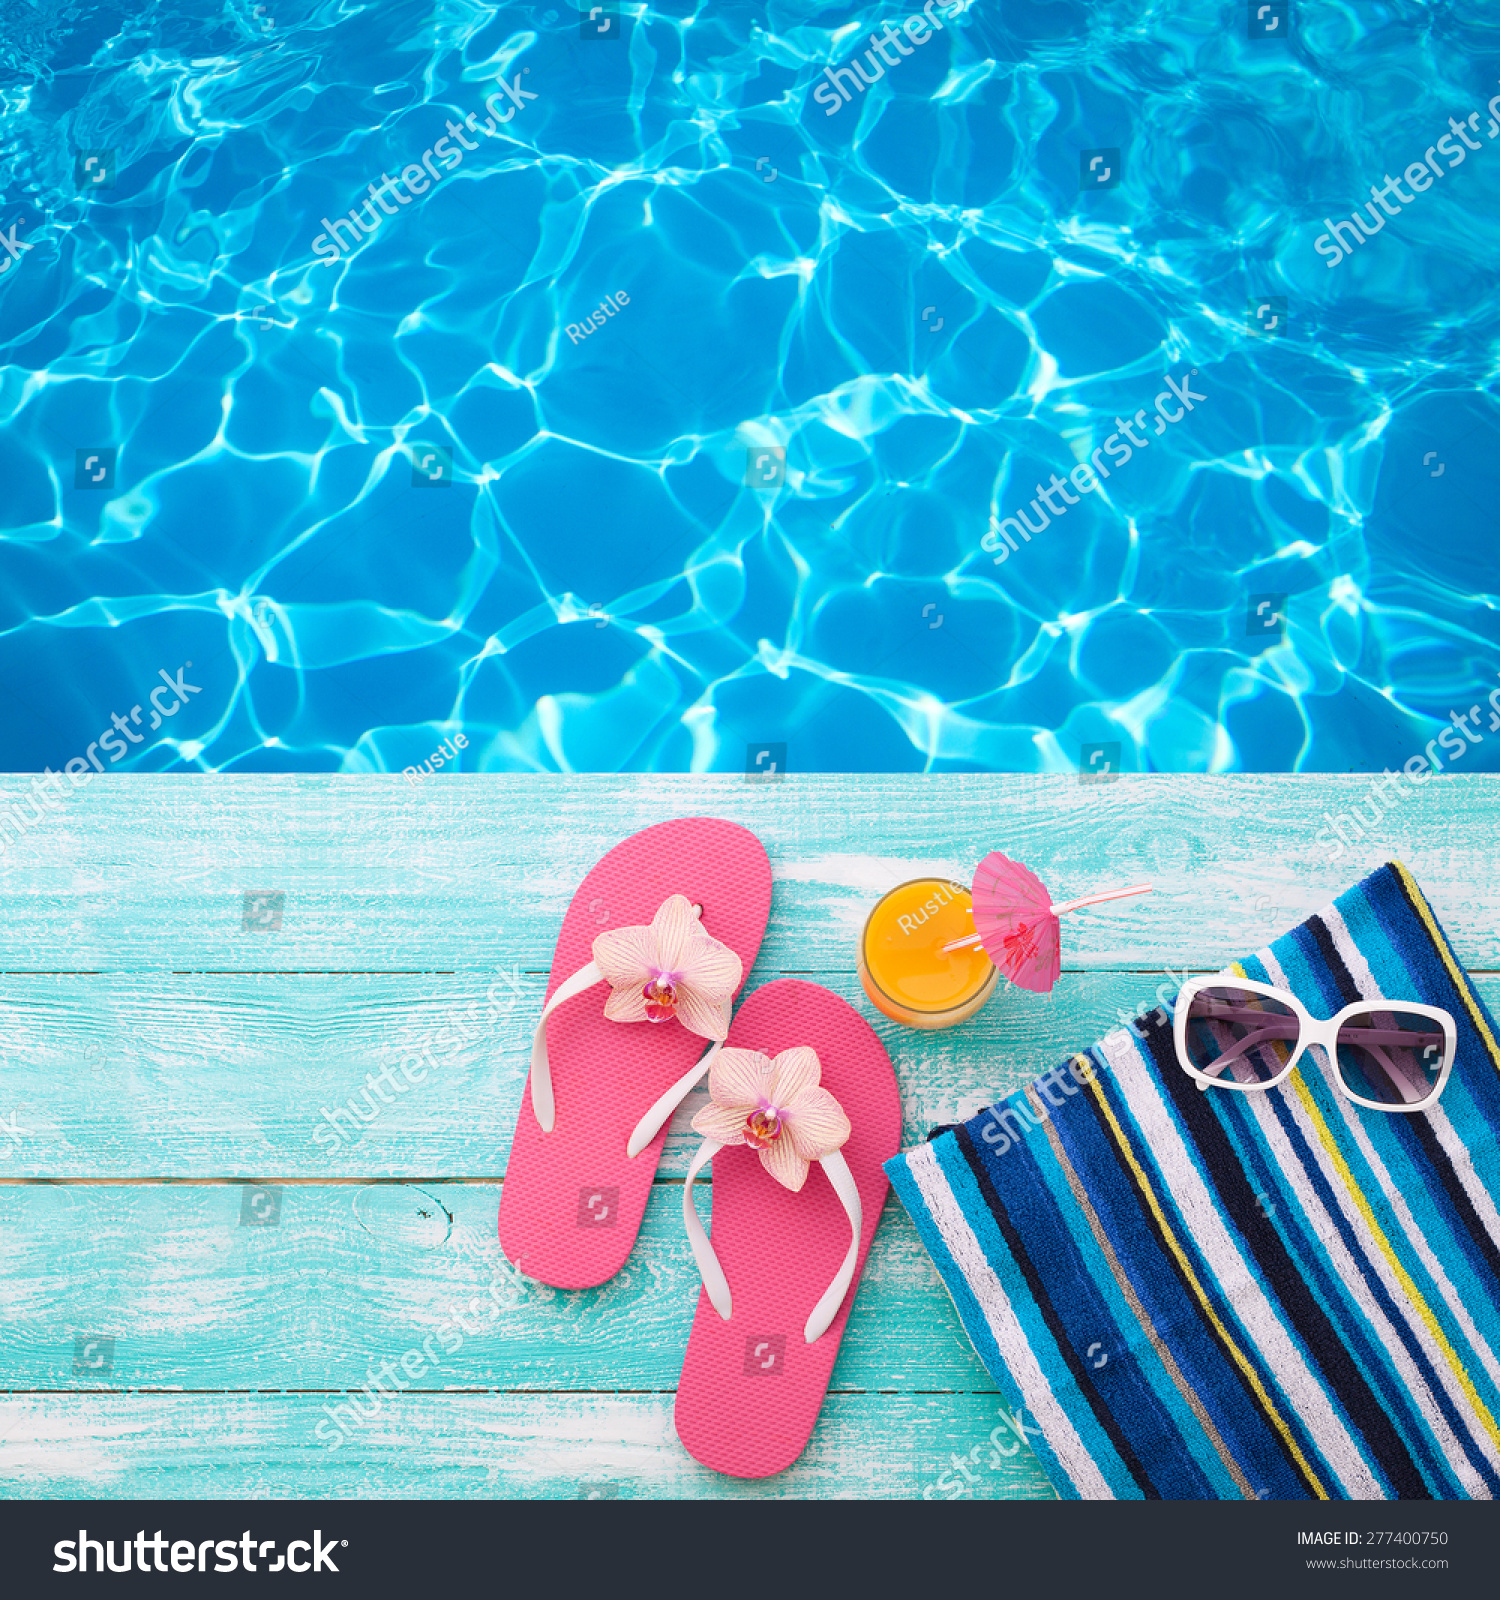 792d9f390 Summer vacation. Pink sandals by swimming pool. Blue sea surface with  waves